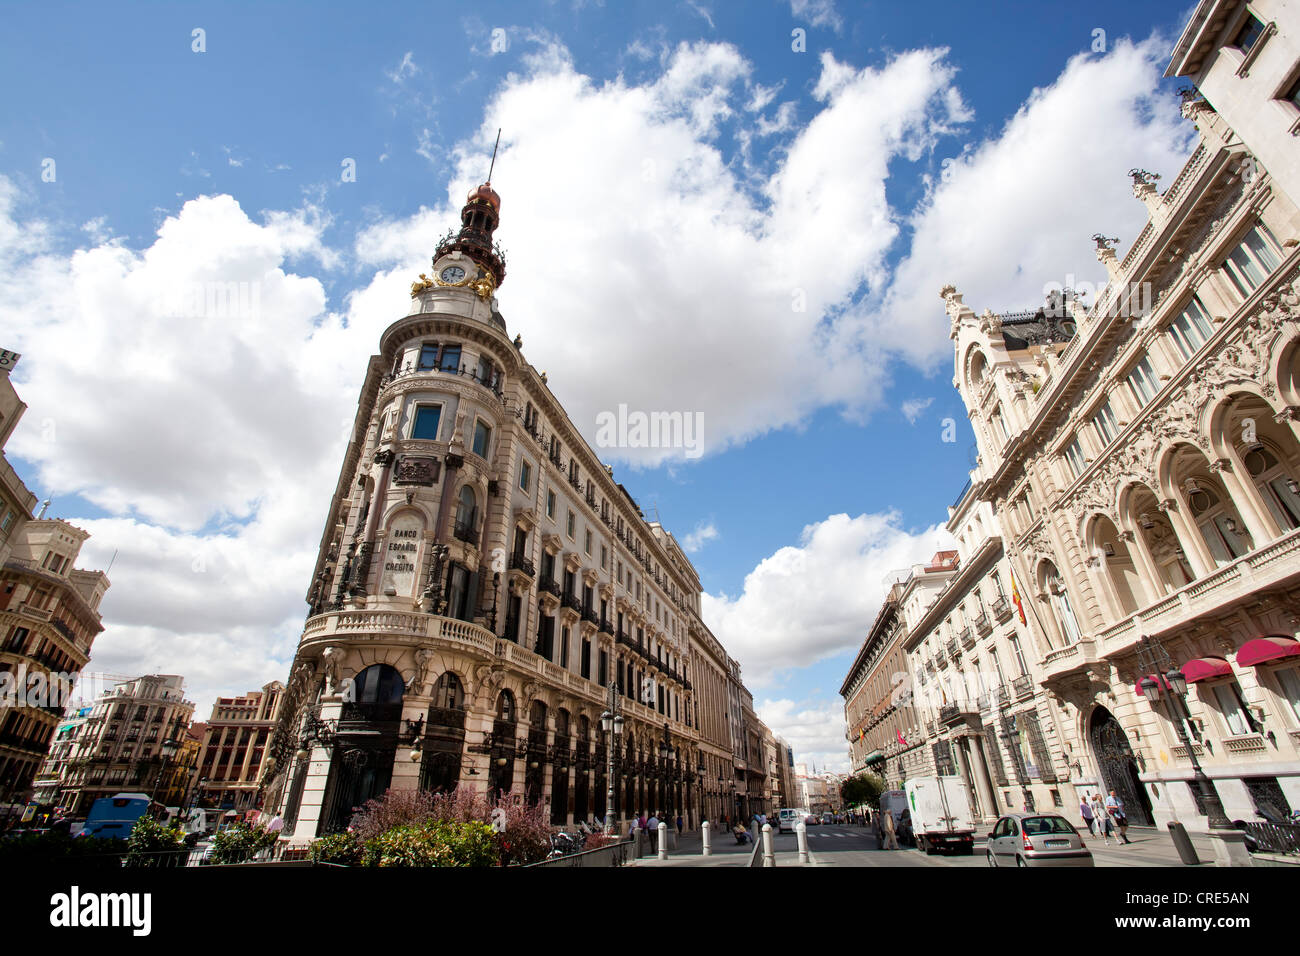 Bank building of Banco Espanol de Credito, in the Palacio de la Equitativa Palace, Madrid, Spain, Europe - Stock Image